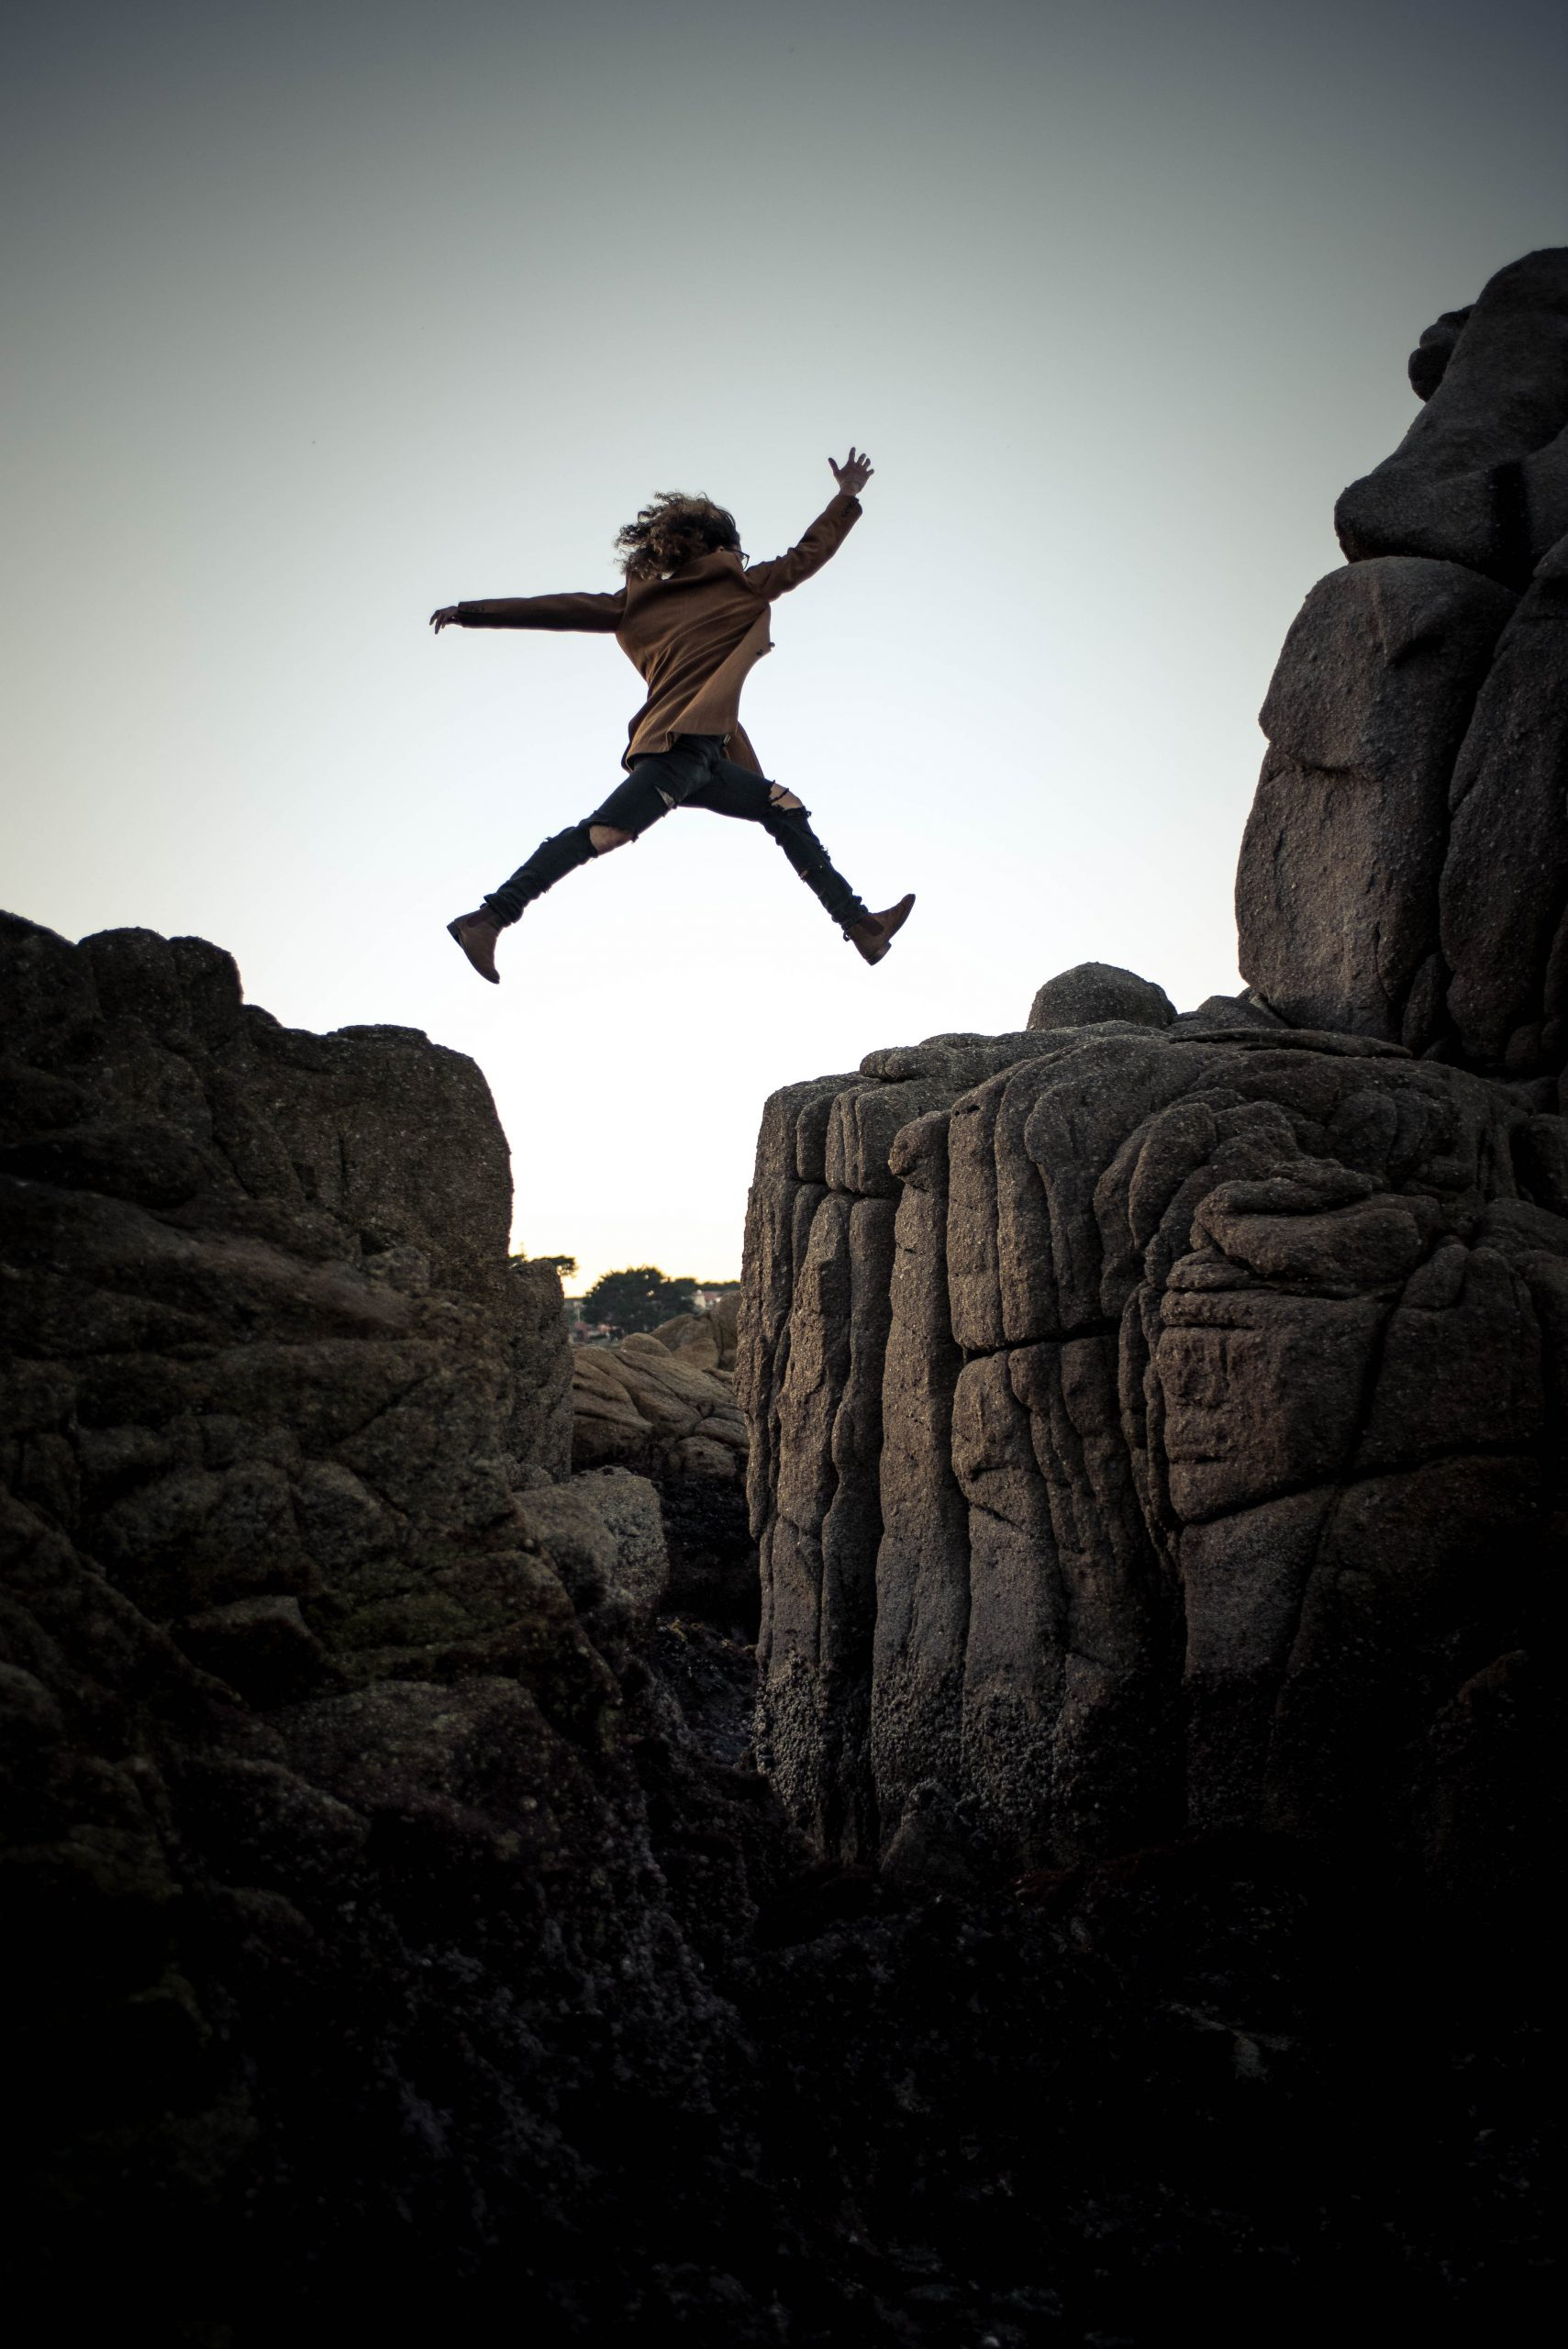 Female jumping over a cliff